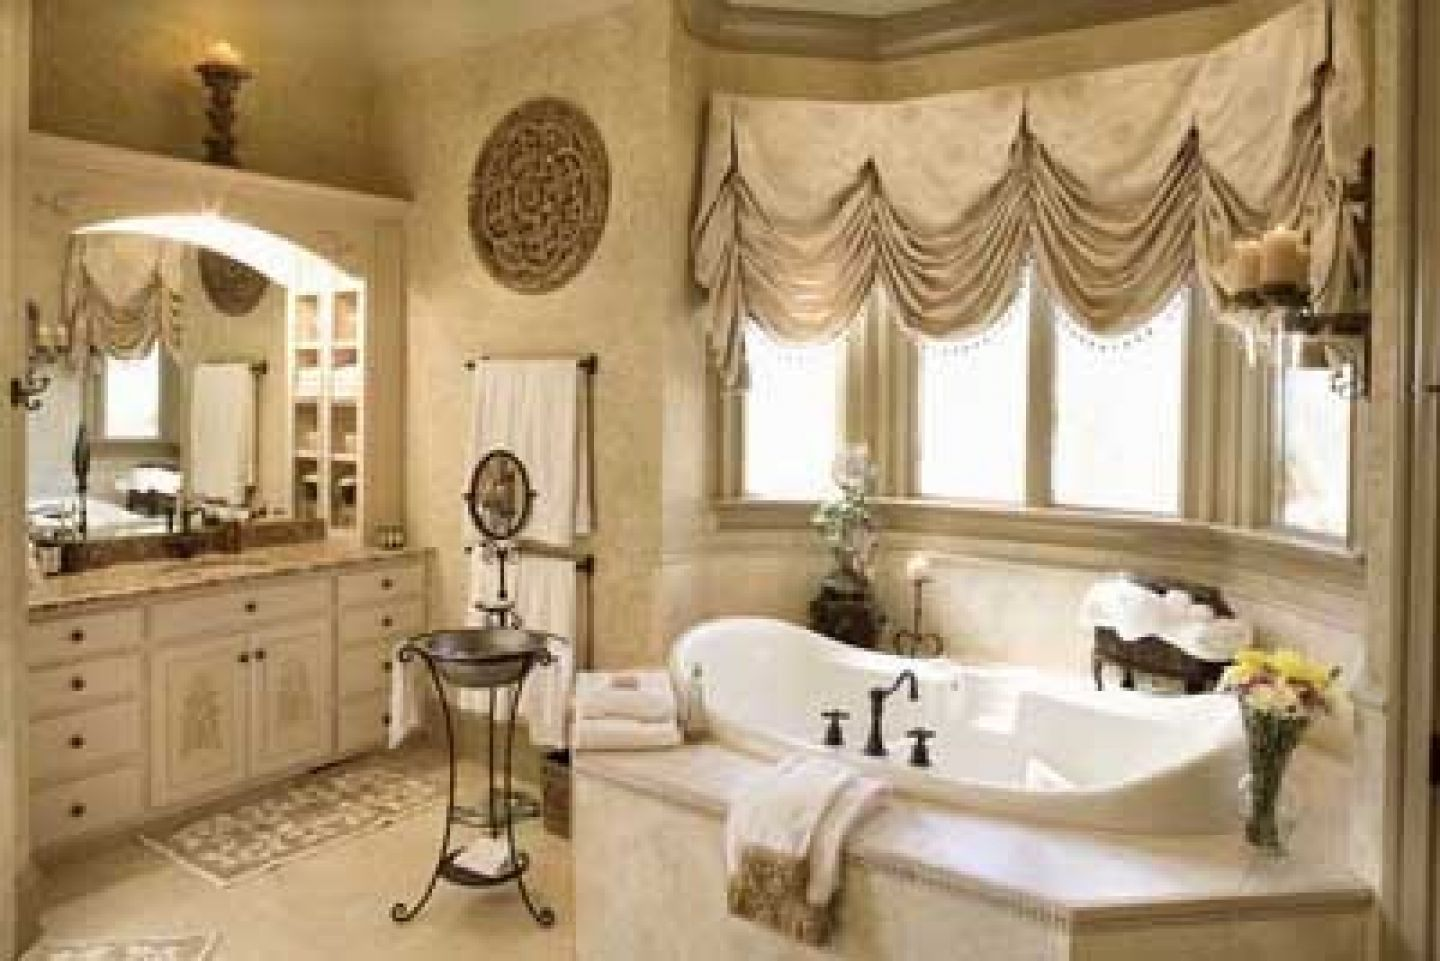 Luxury Bathroom with Well Treated Windows Featuring Curtain Valance with Elegant Color